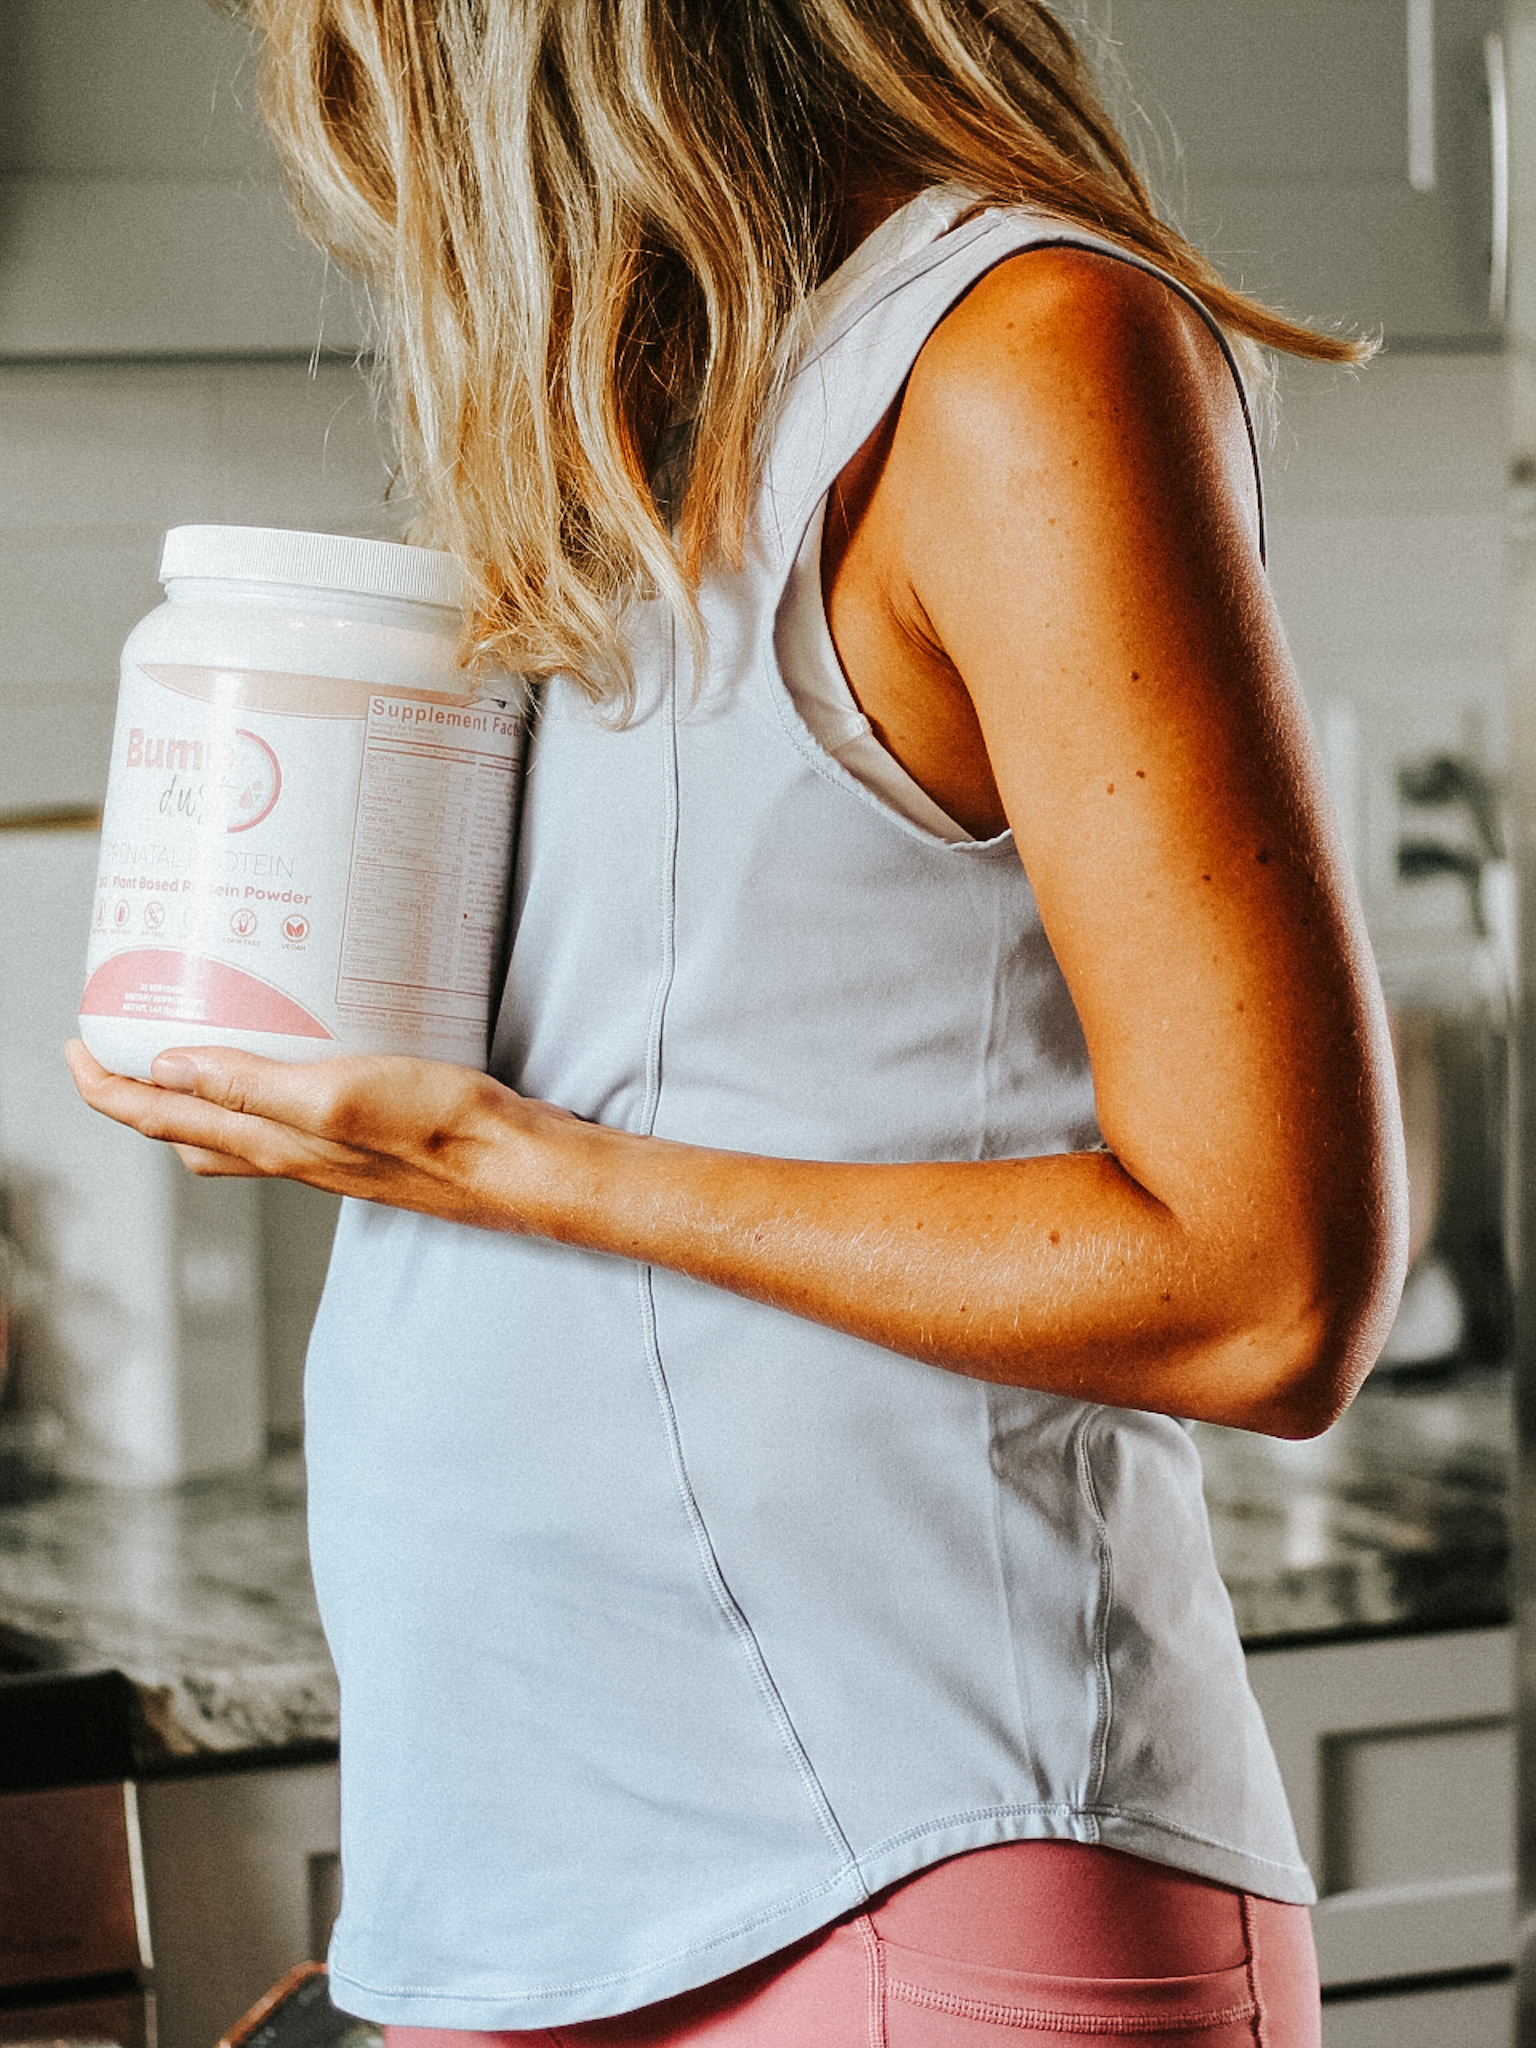 bump dust safe pregnancy protein powder